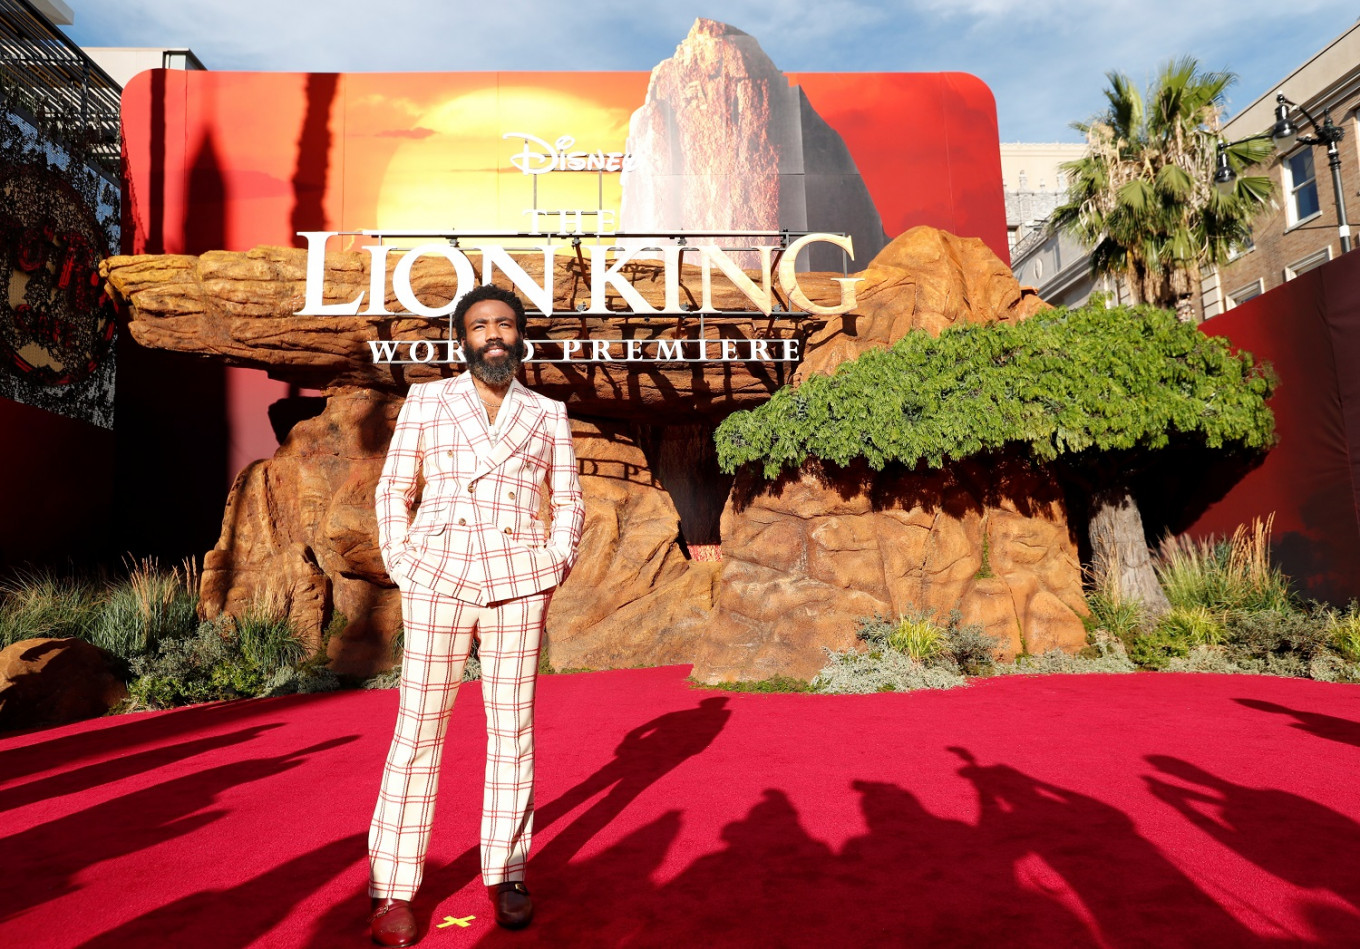 New 'Lion King' movie lands with a critical whimper